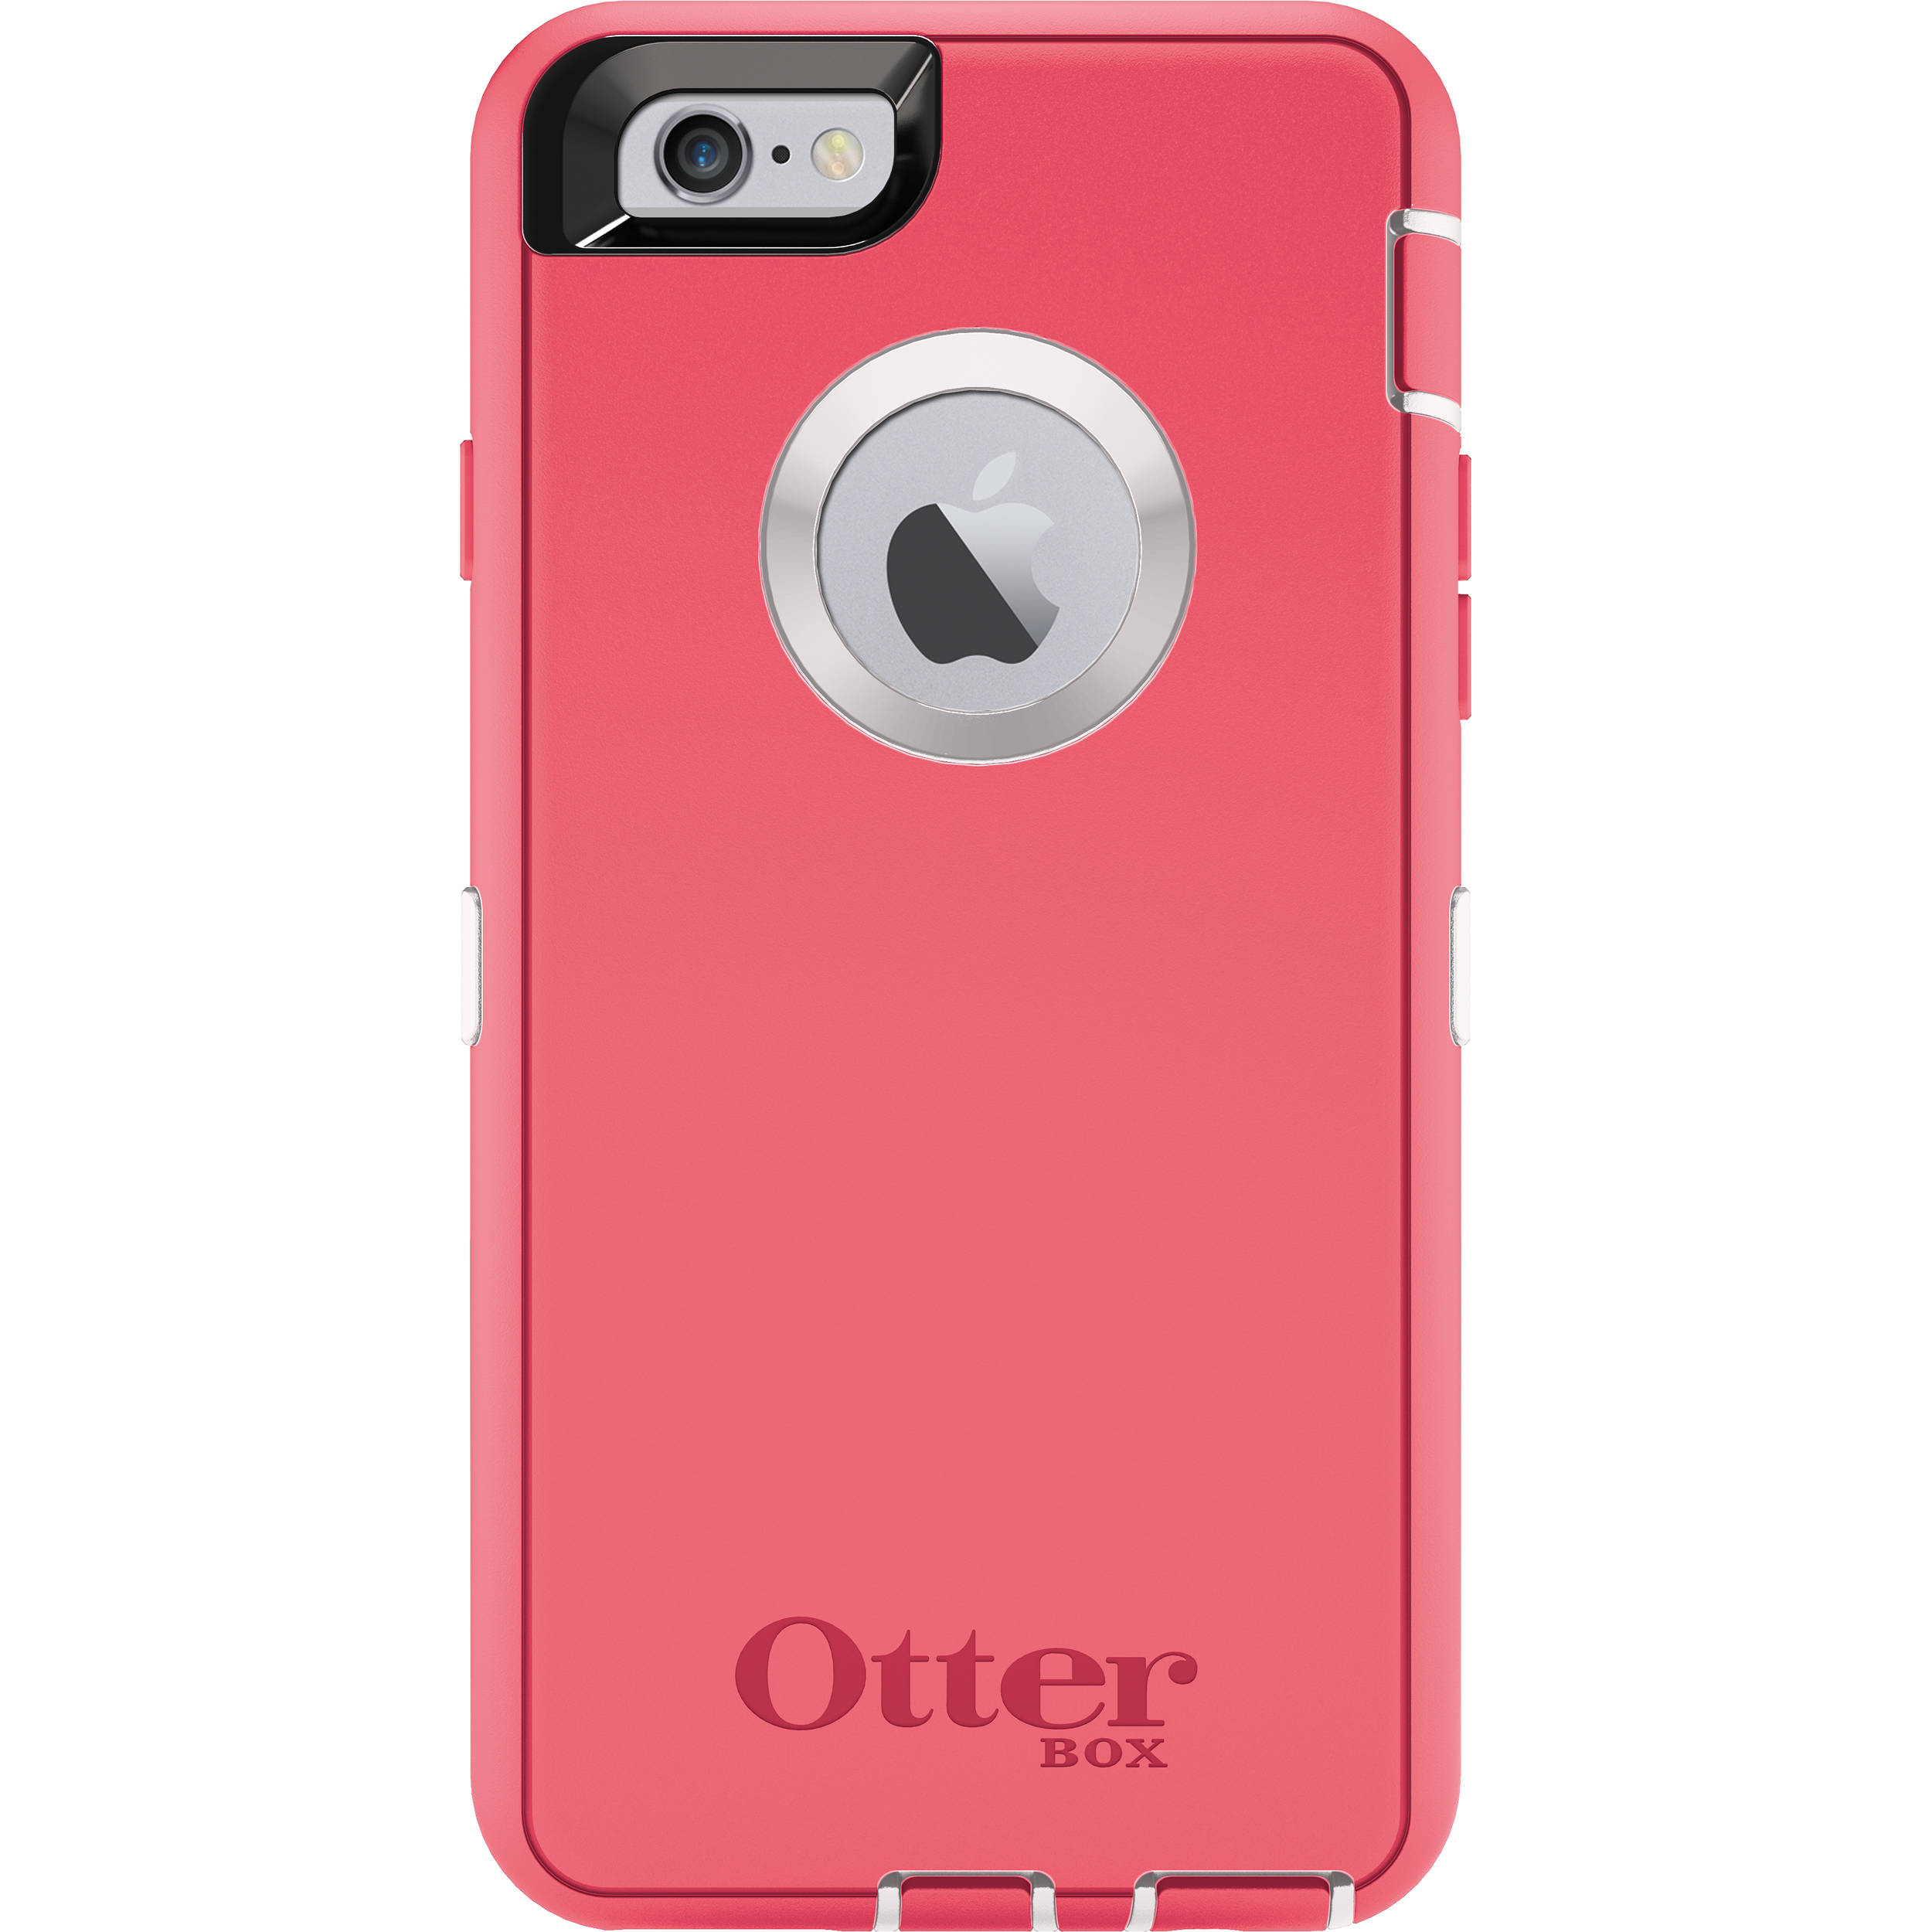 otterboxes for iphone 6 otter box defender for iphone 6 neon 77 50208 b amp h 15826